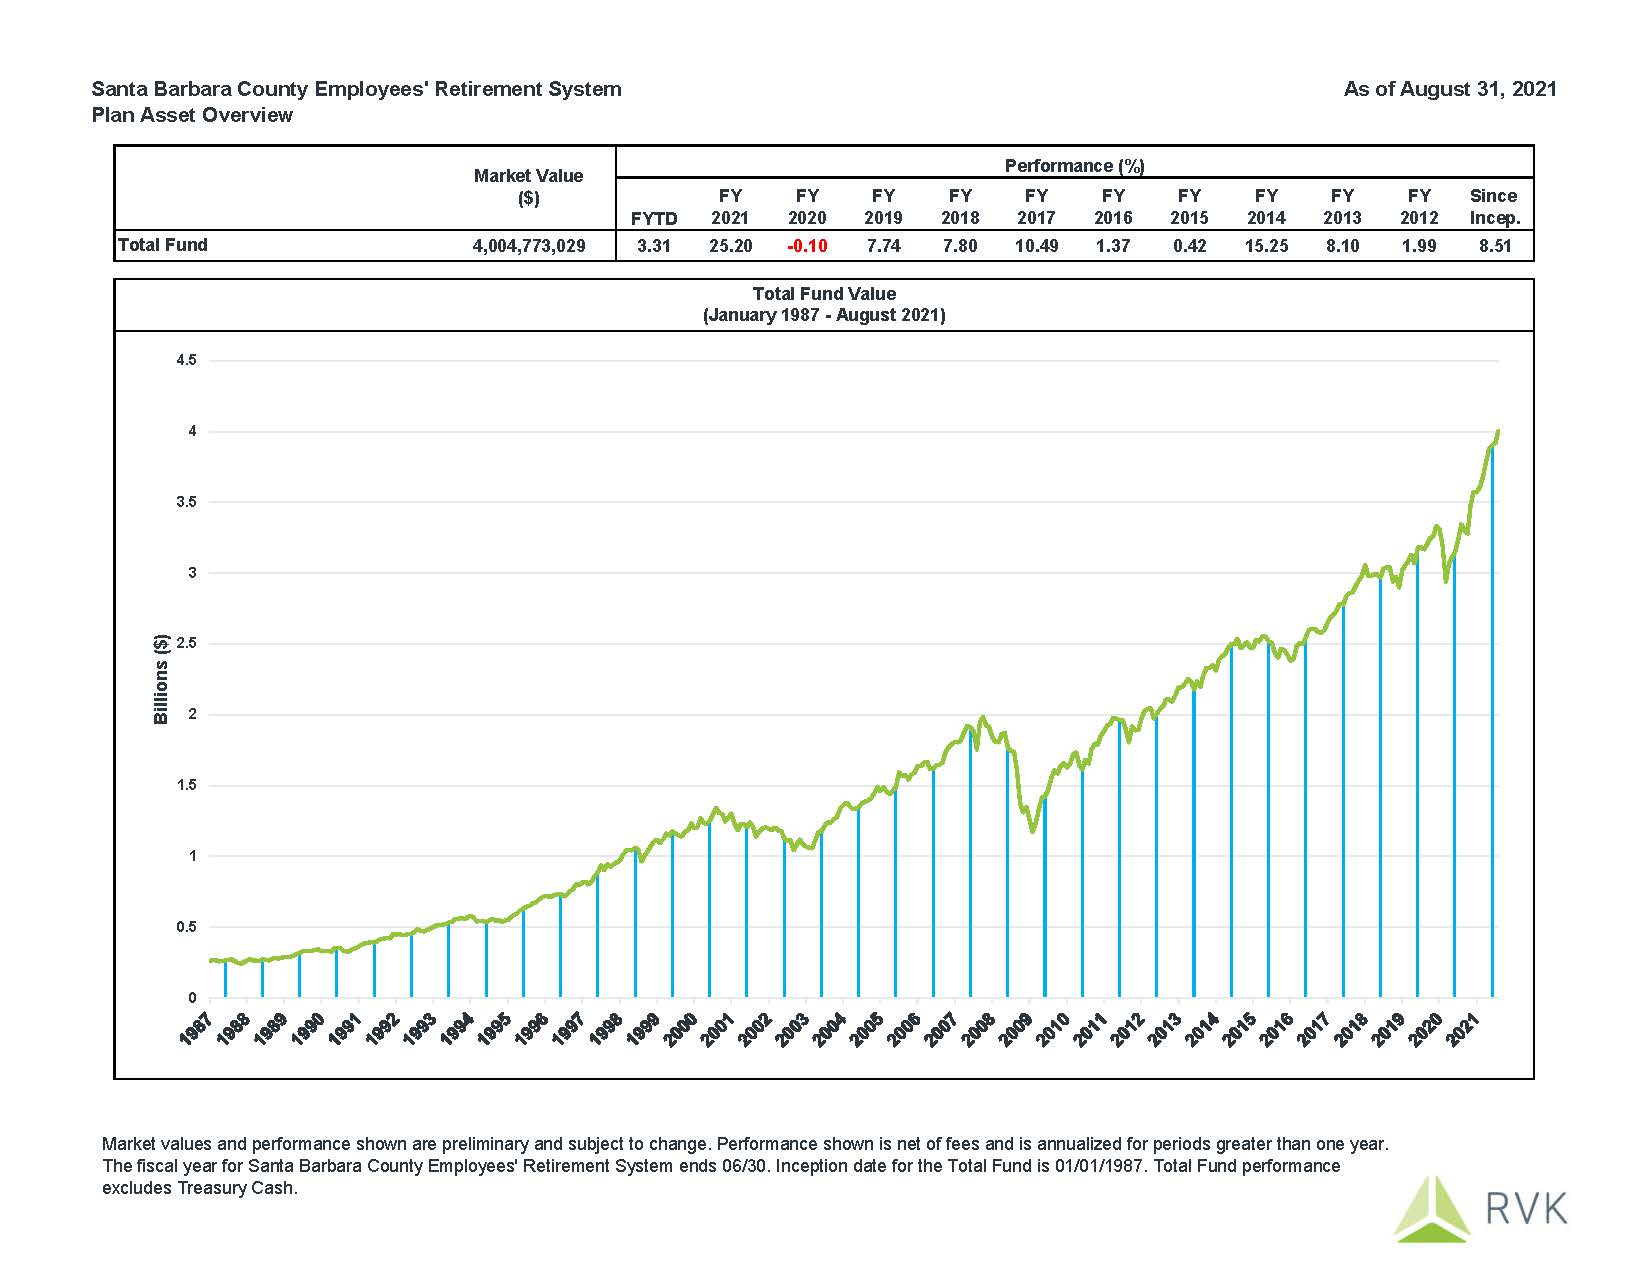 August 2021 Fund Performance: Fiscal Year to Date performance is 3.31%.